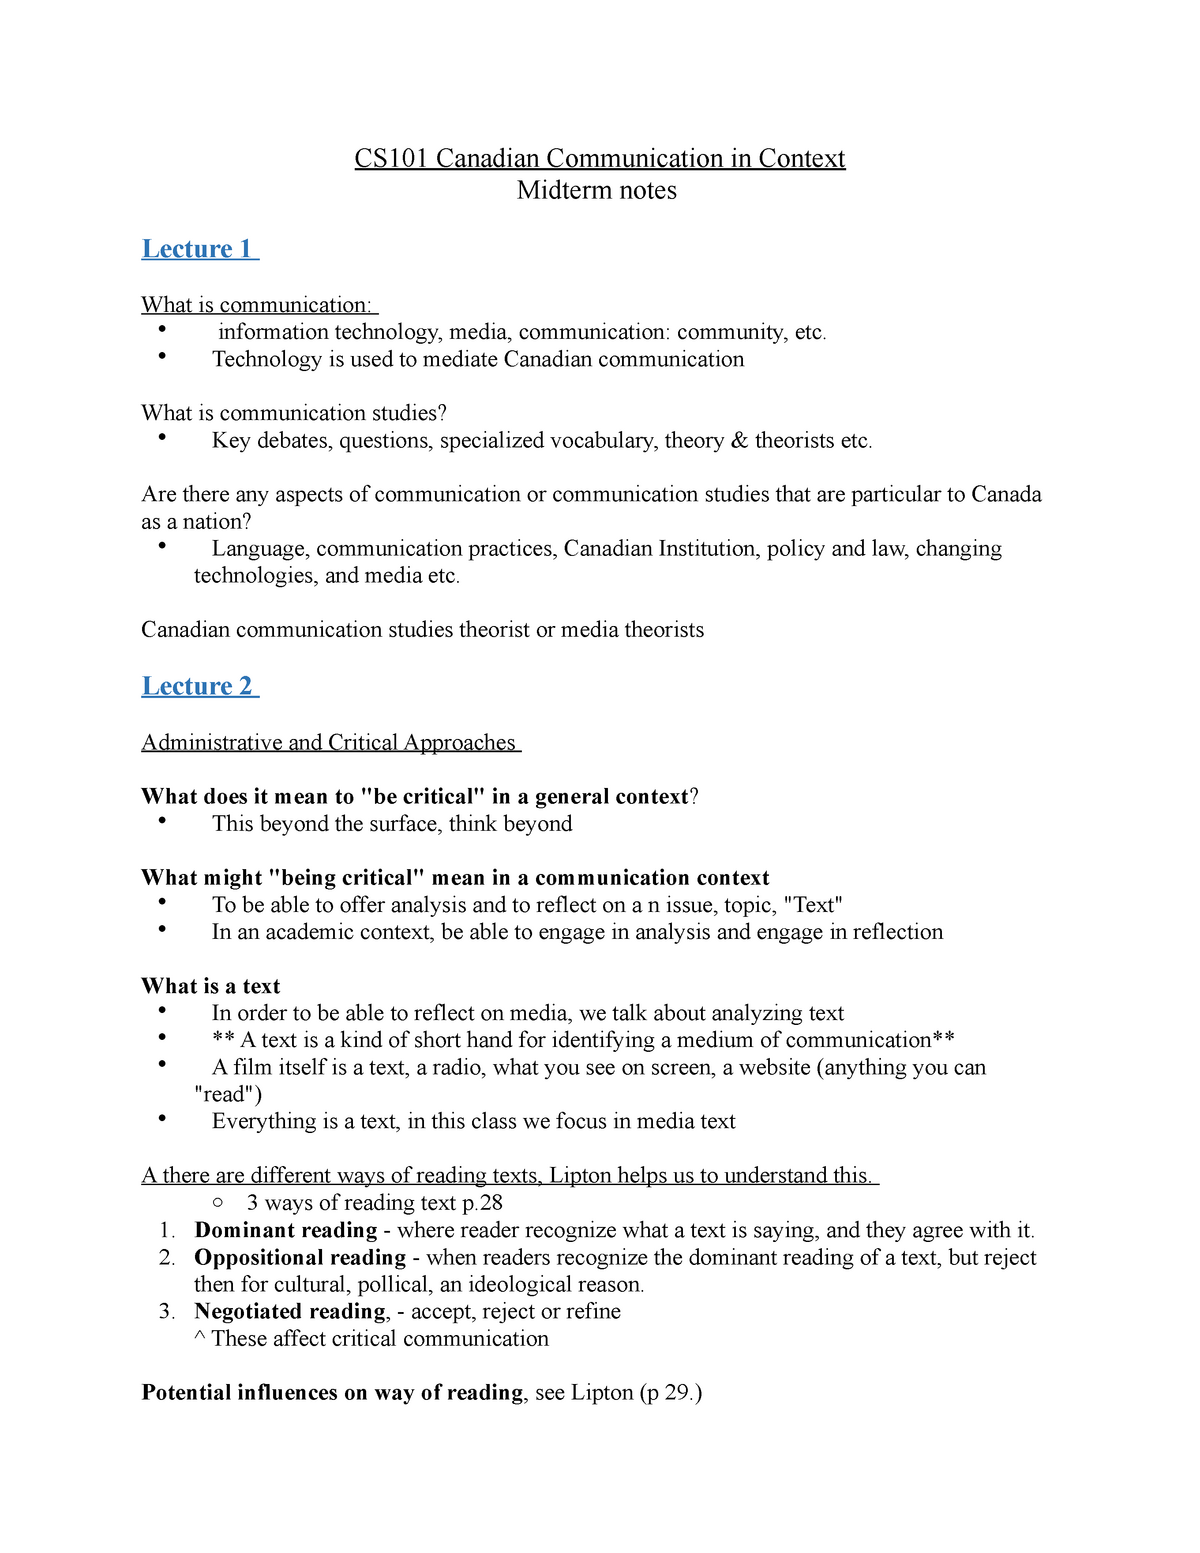 CS101 Midterm notes - Canadian Communication in Context